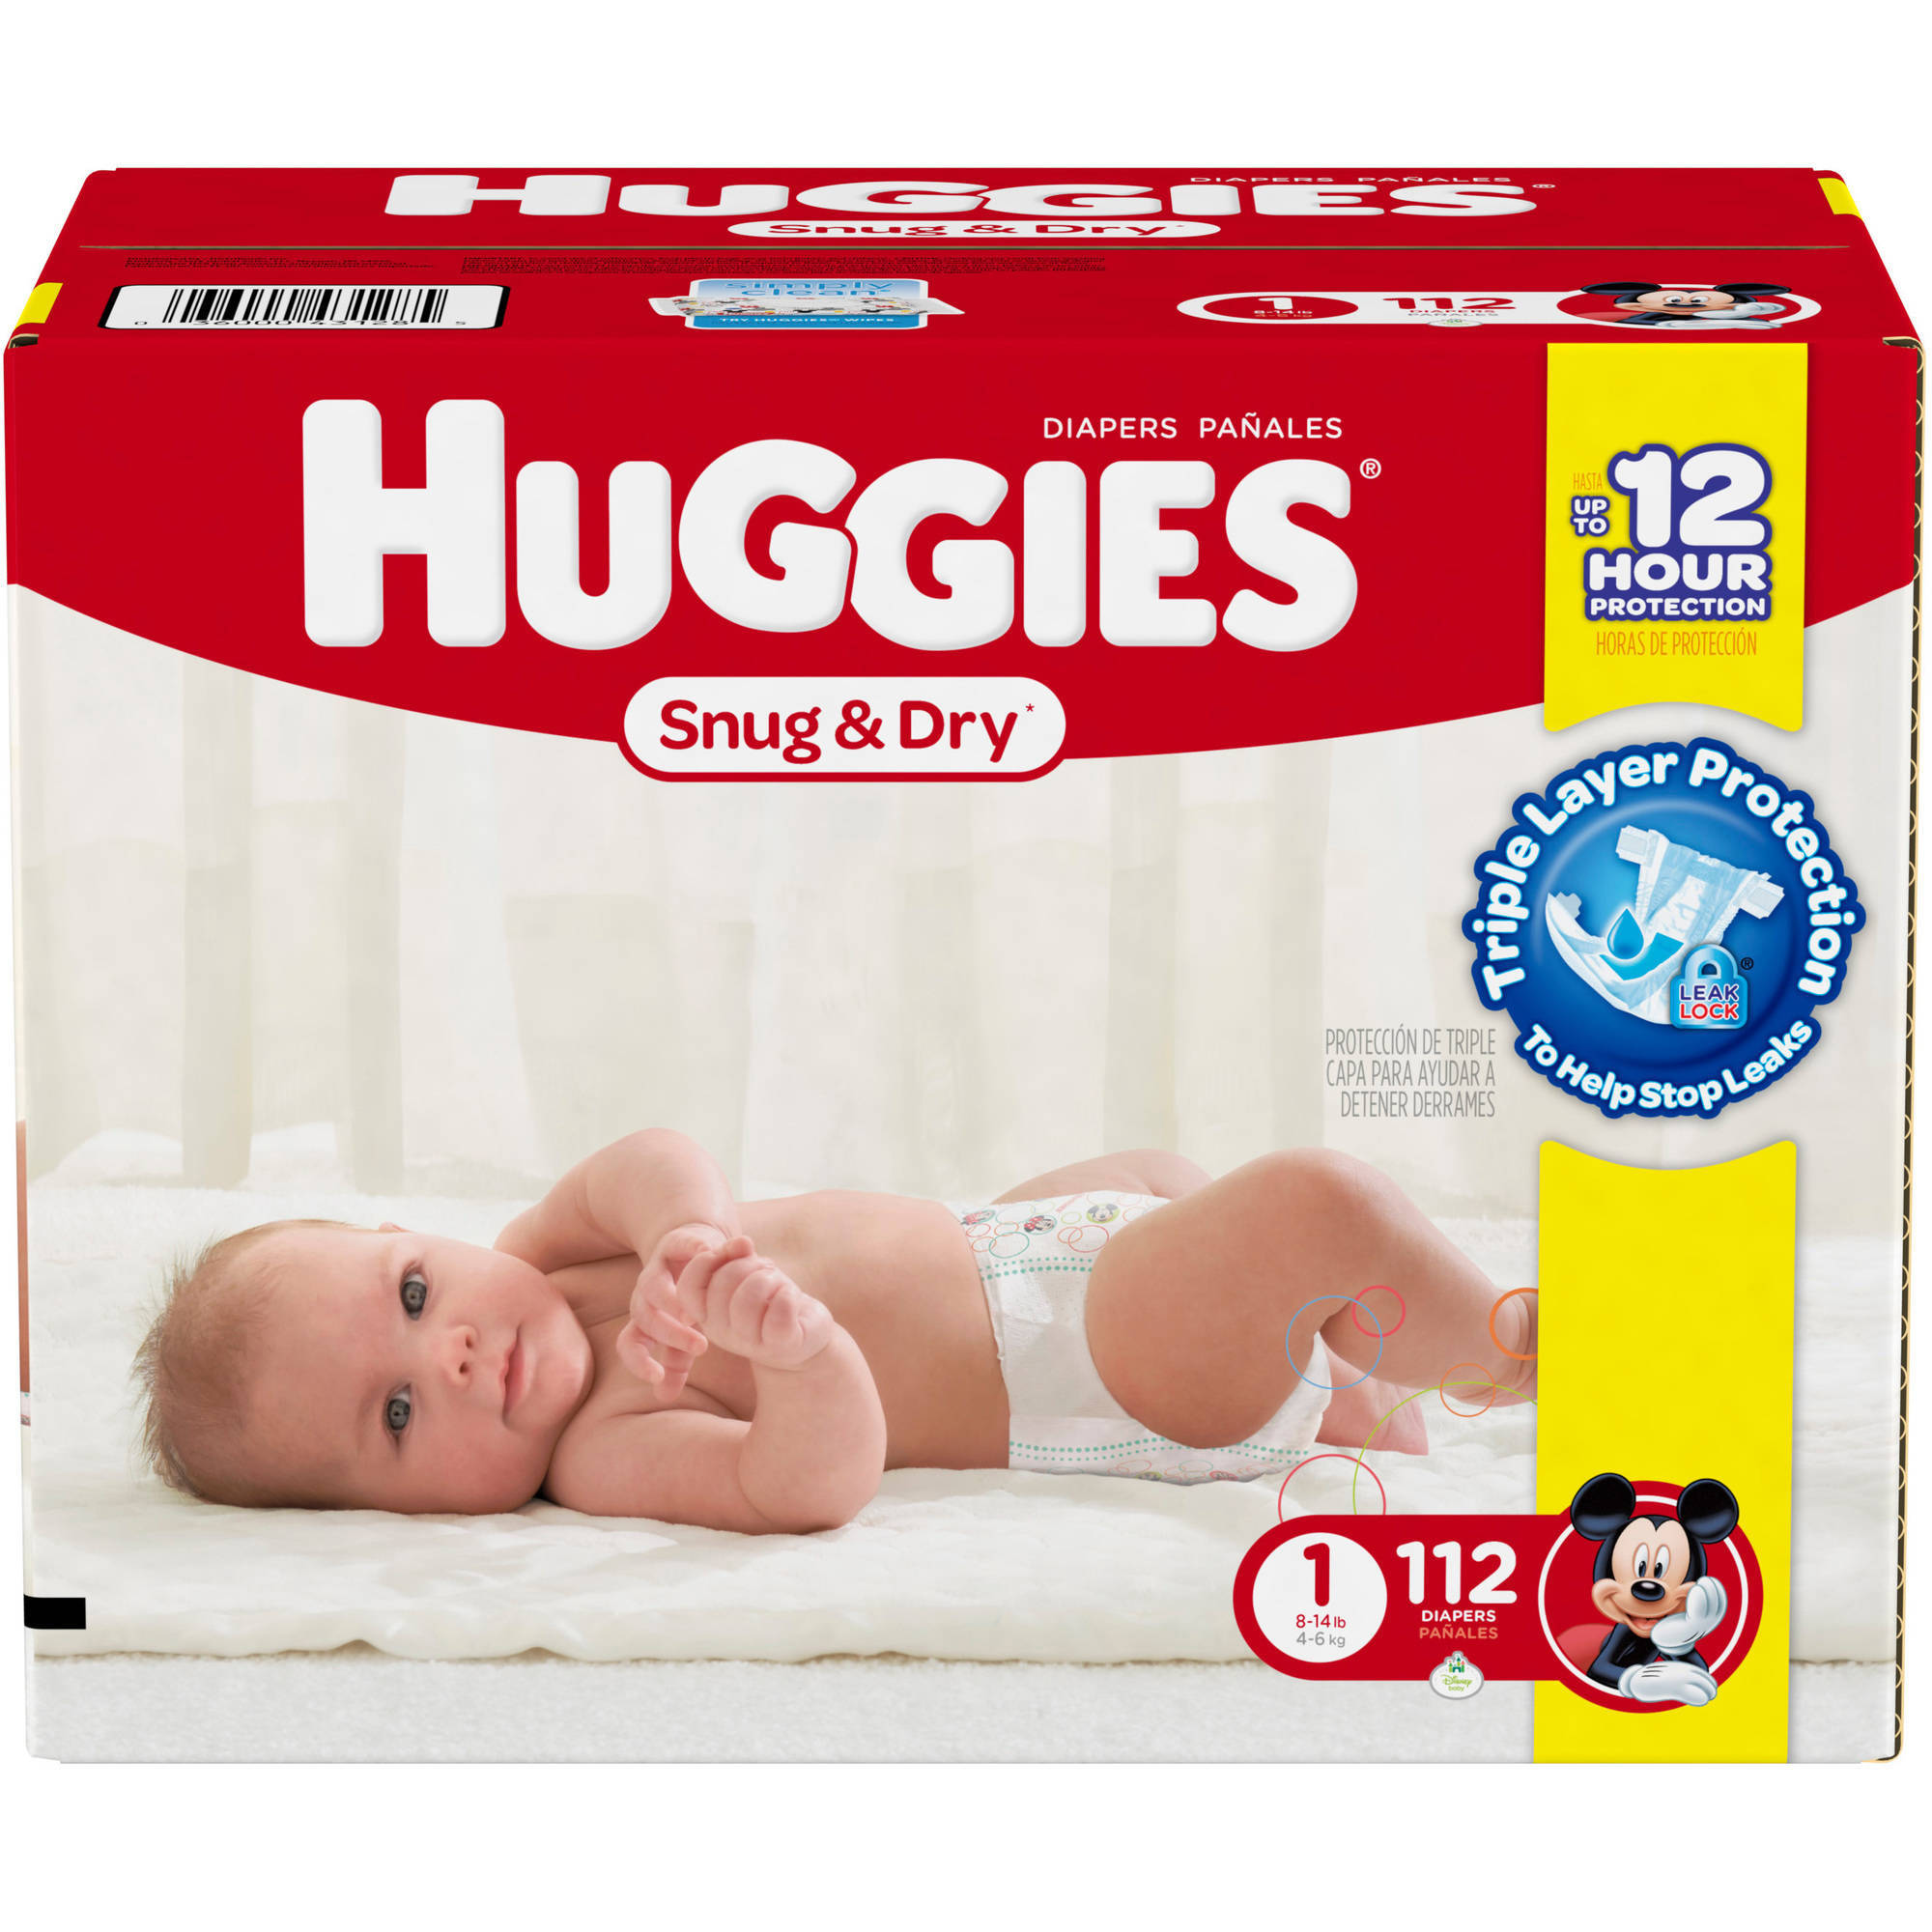 HUGGIES Snug & Dry Diapers, Size 1 (Choose Diaper Count)